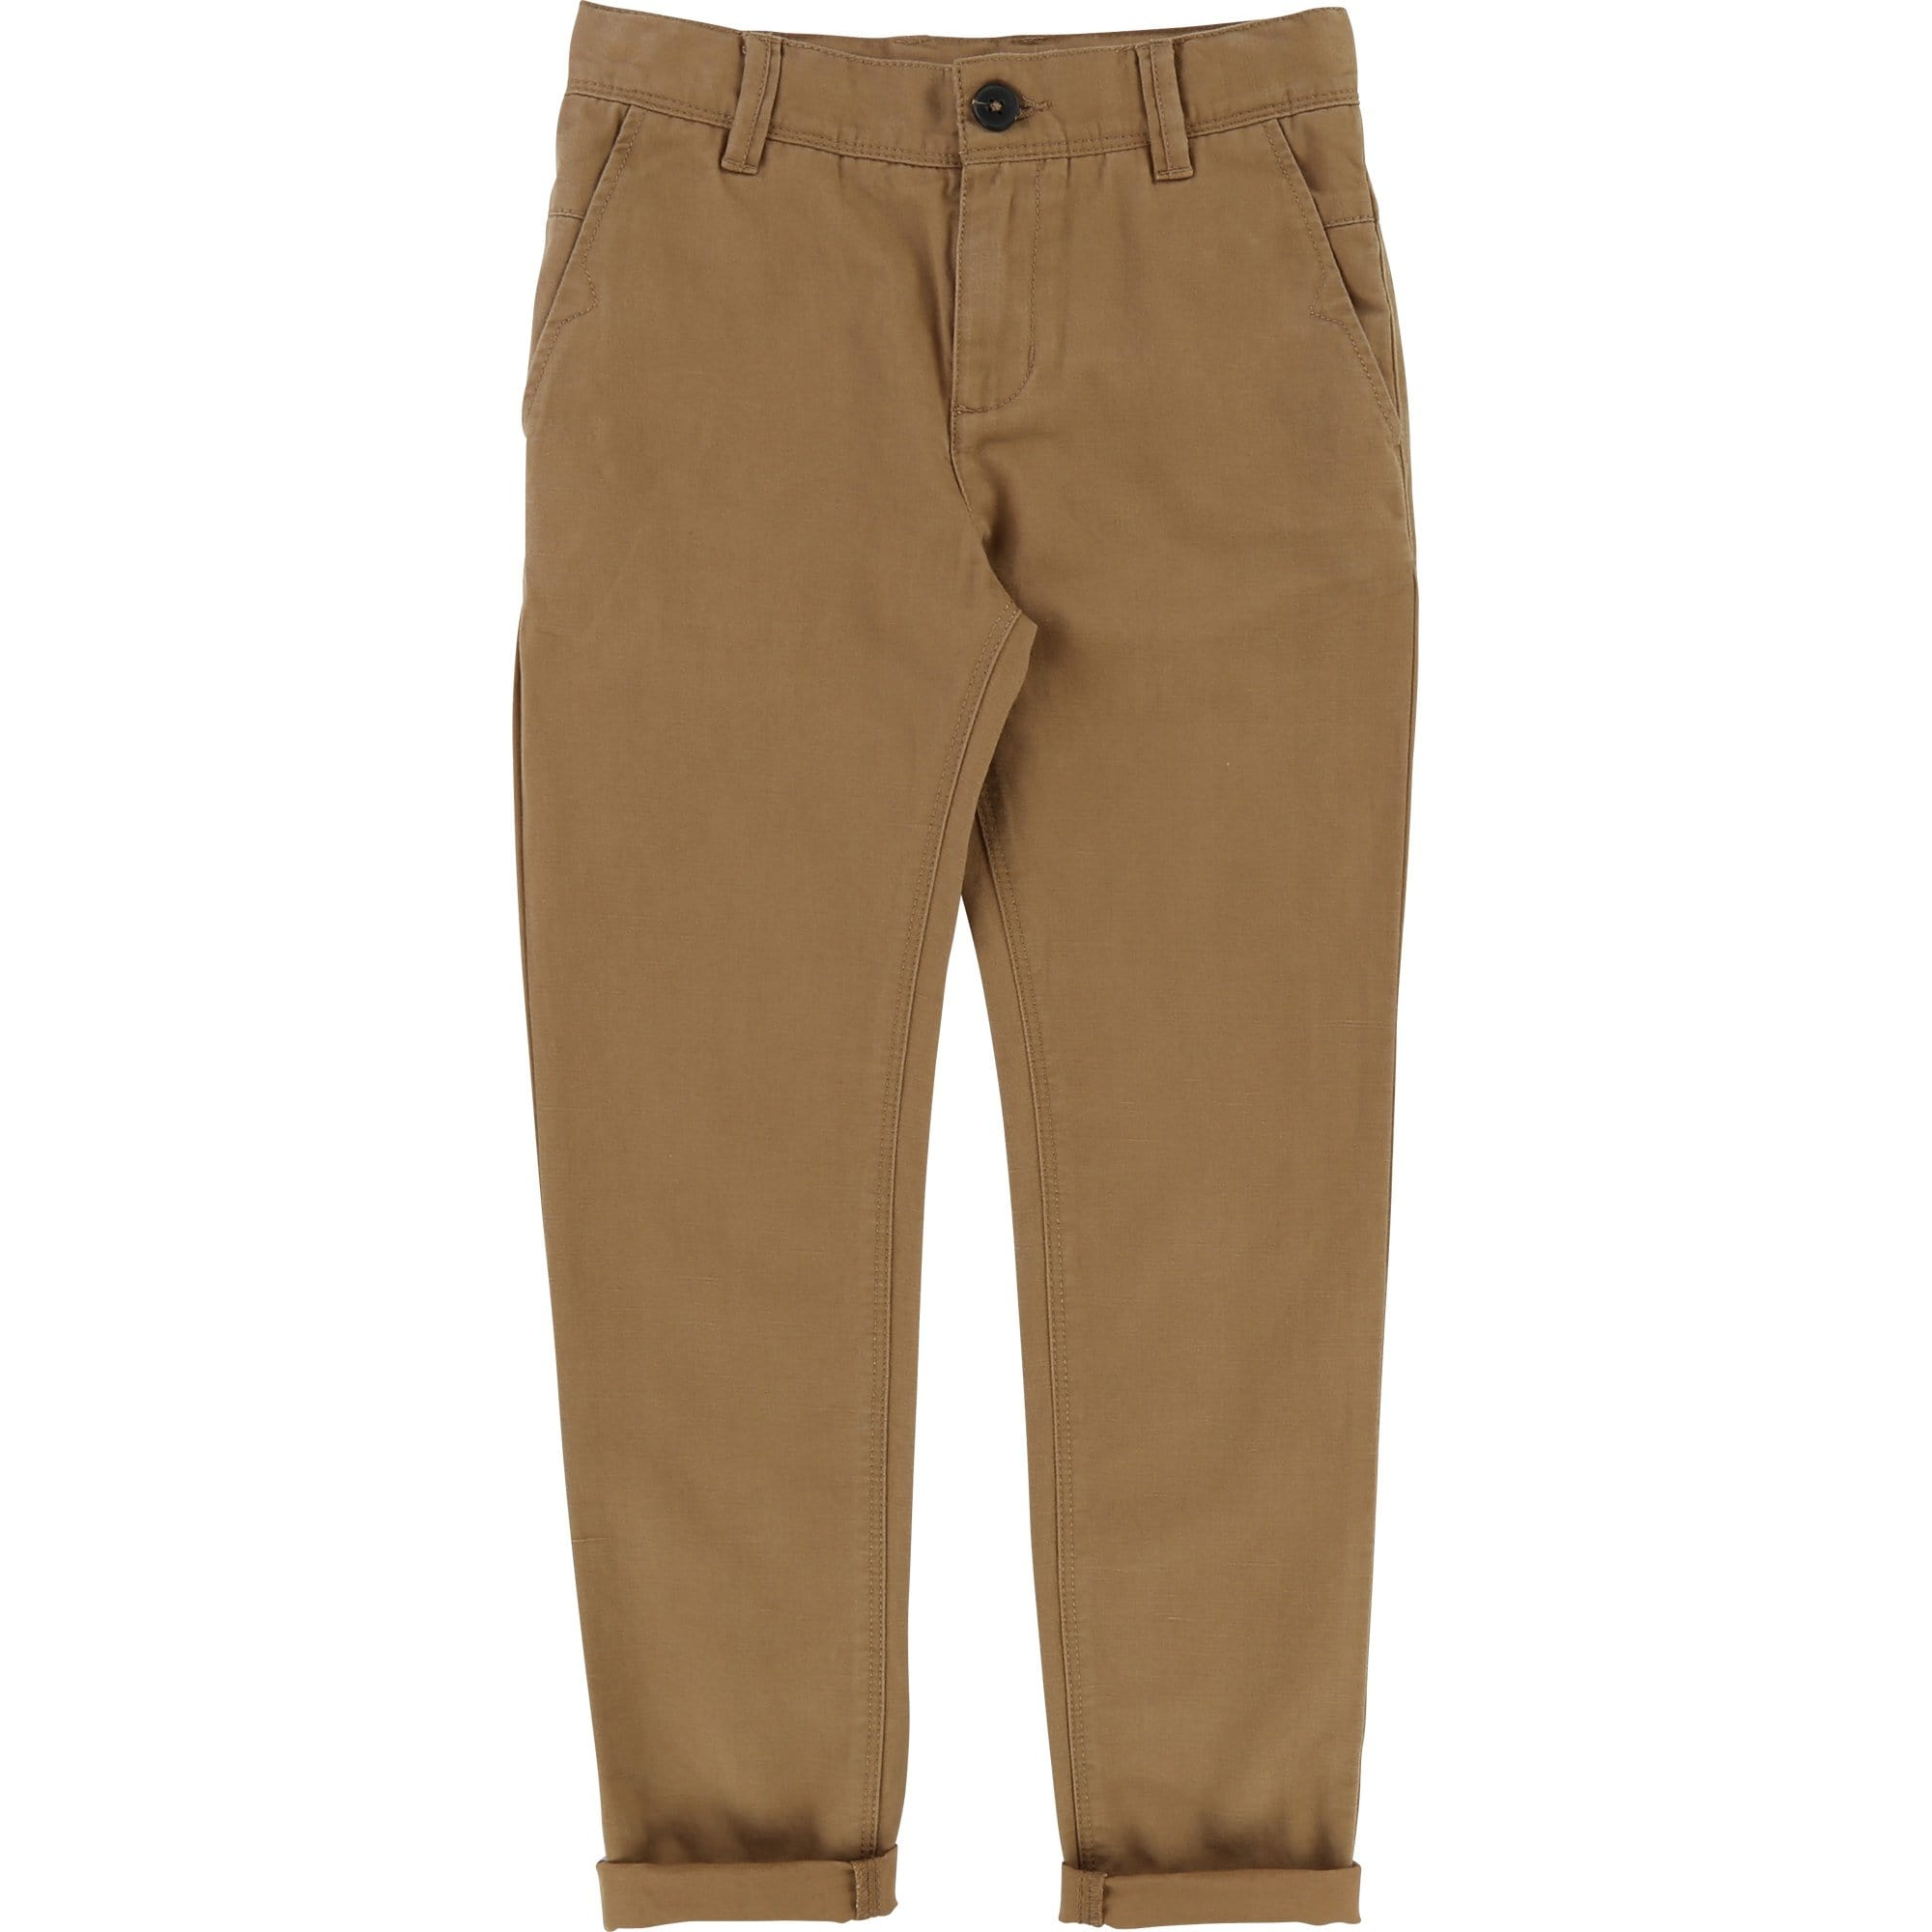 Hugo Boss Baby Classic Pants